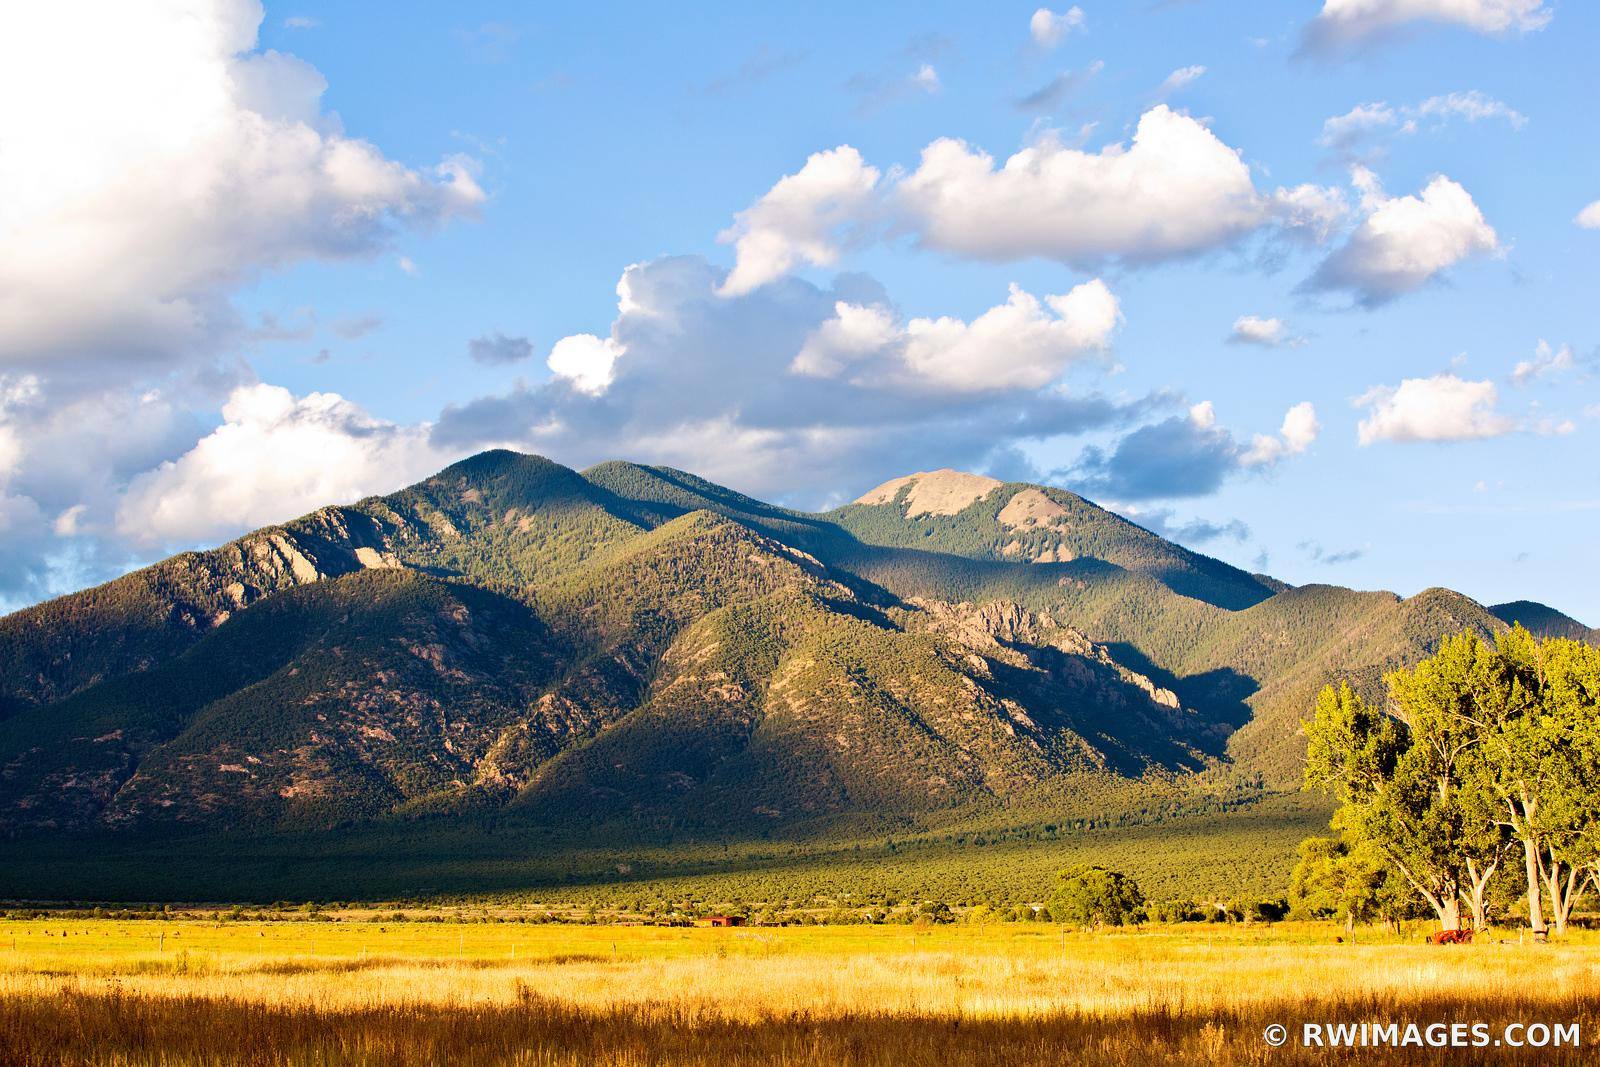 TAOS MOUNTAIN TAOS NEW MEXICO LANDSCAPE